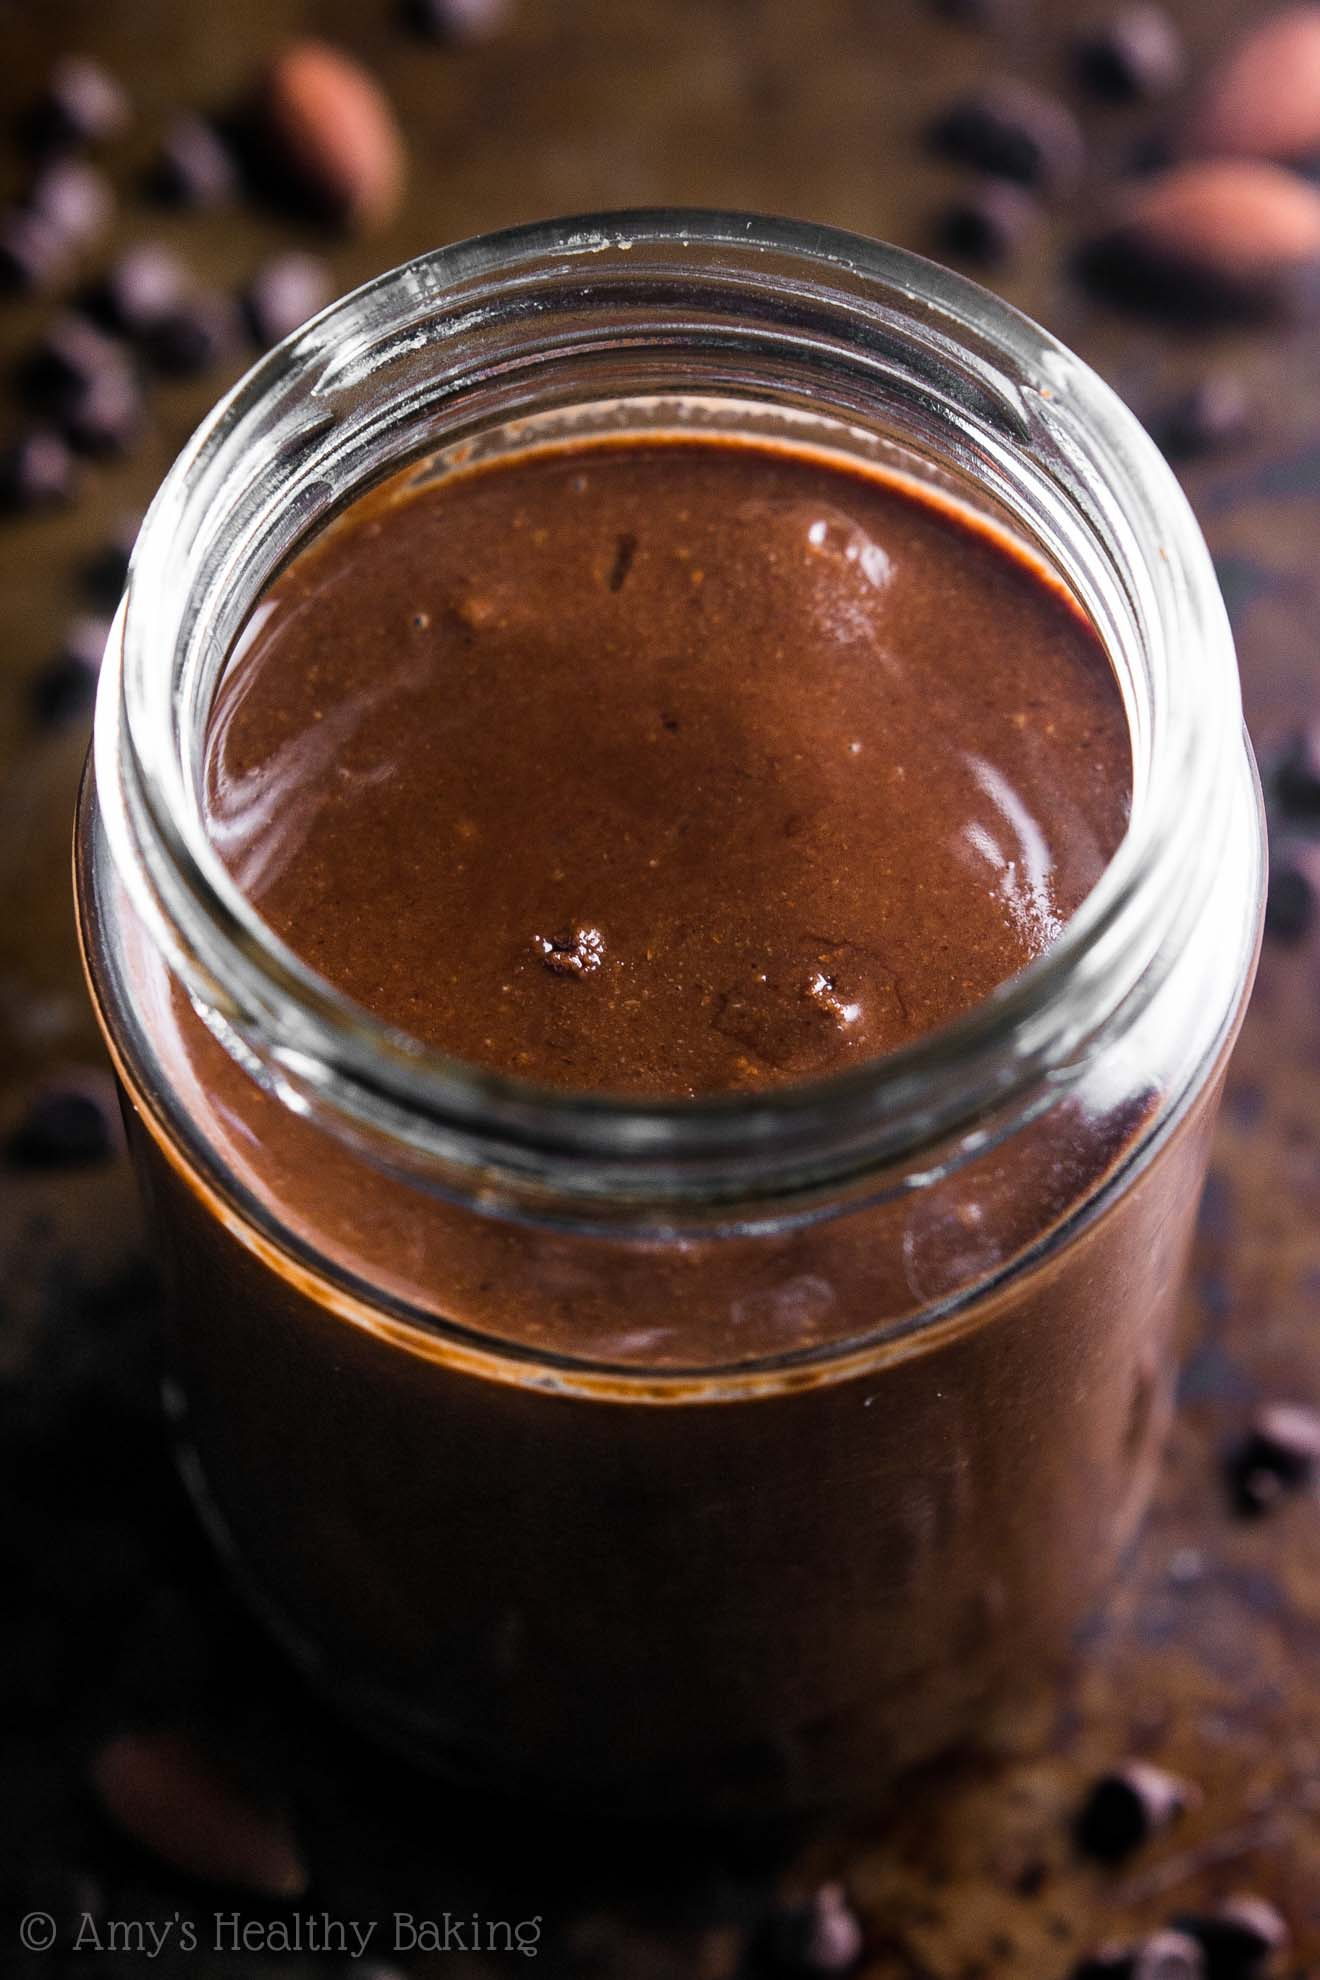 Healthy homemade almond butter that tastes like the candy bar! The recipe is SO easy. Just 5 ingredients + 15 minutes!